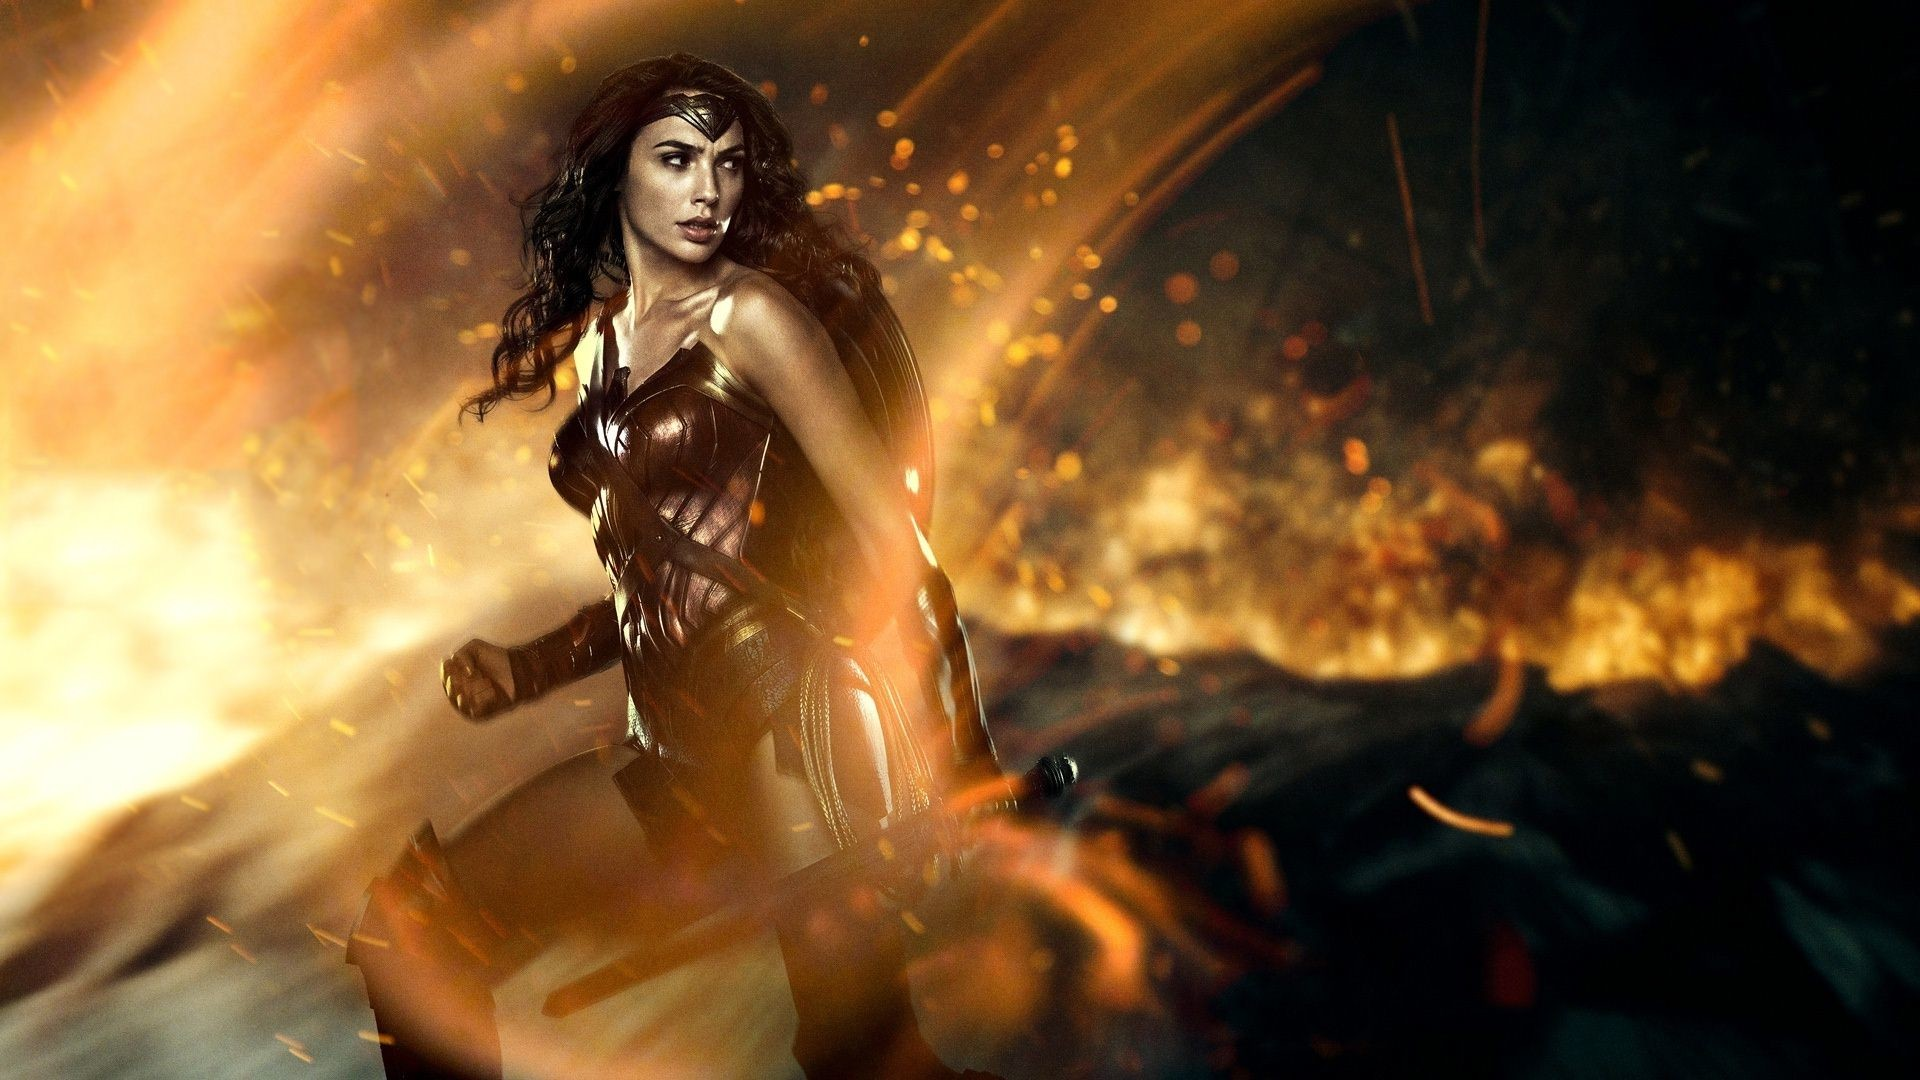 2017 Wonder Woman 4k Hd Movies 4k Wallpapers Images: Wonderwoman Wallpaper (69+ Images